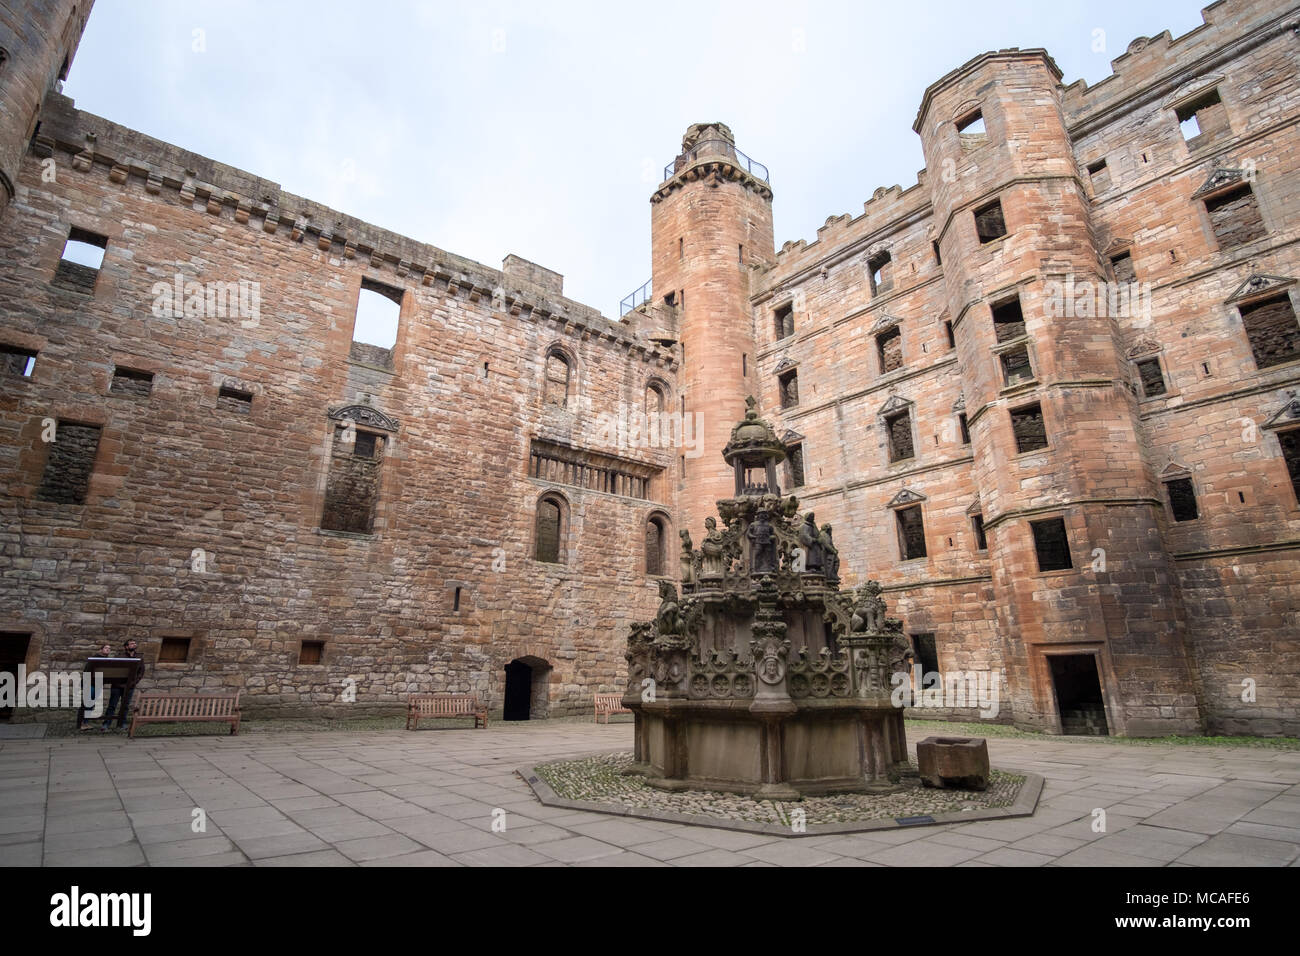 Linlithgow Palace in the town of Linlithgow, West Lothian, Scotland Stock Photo